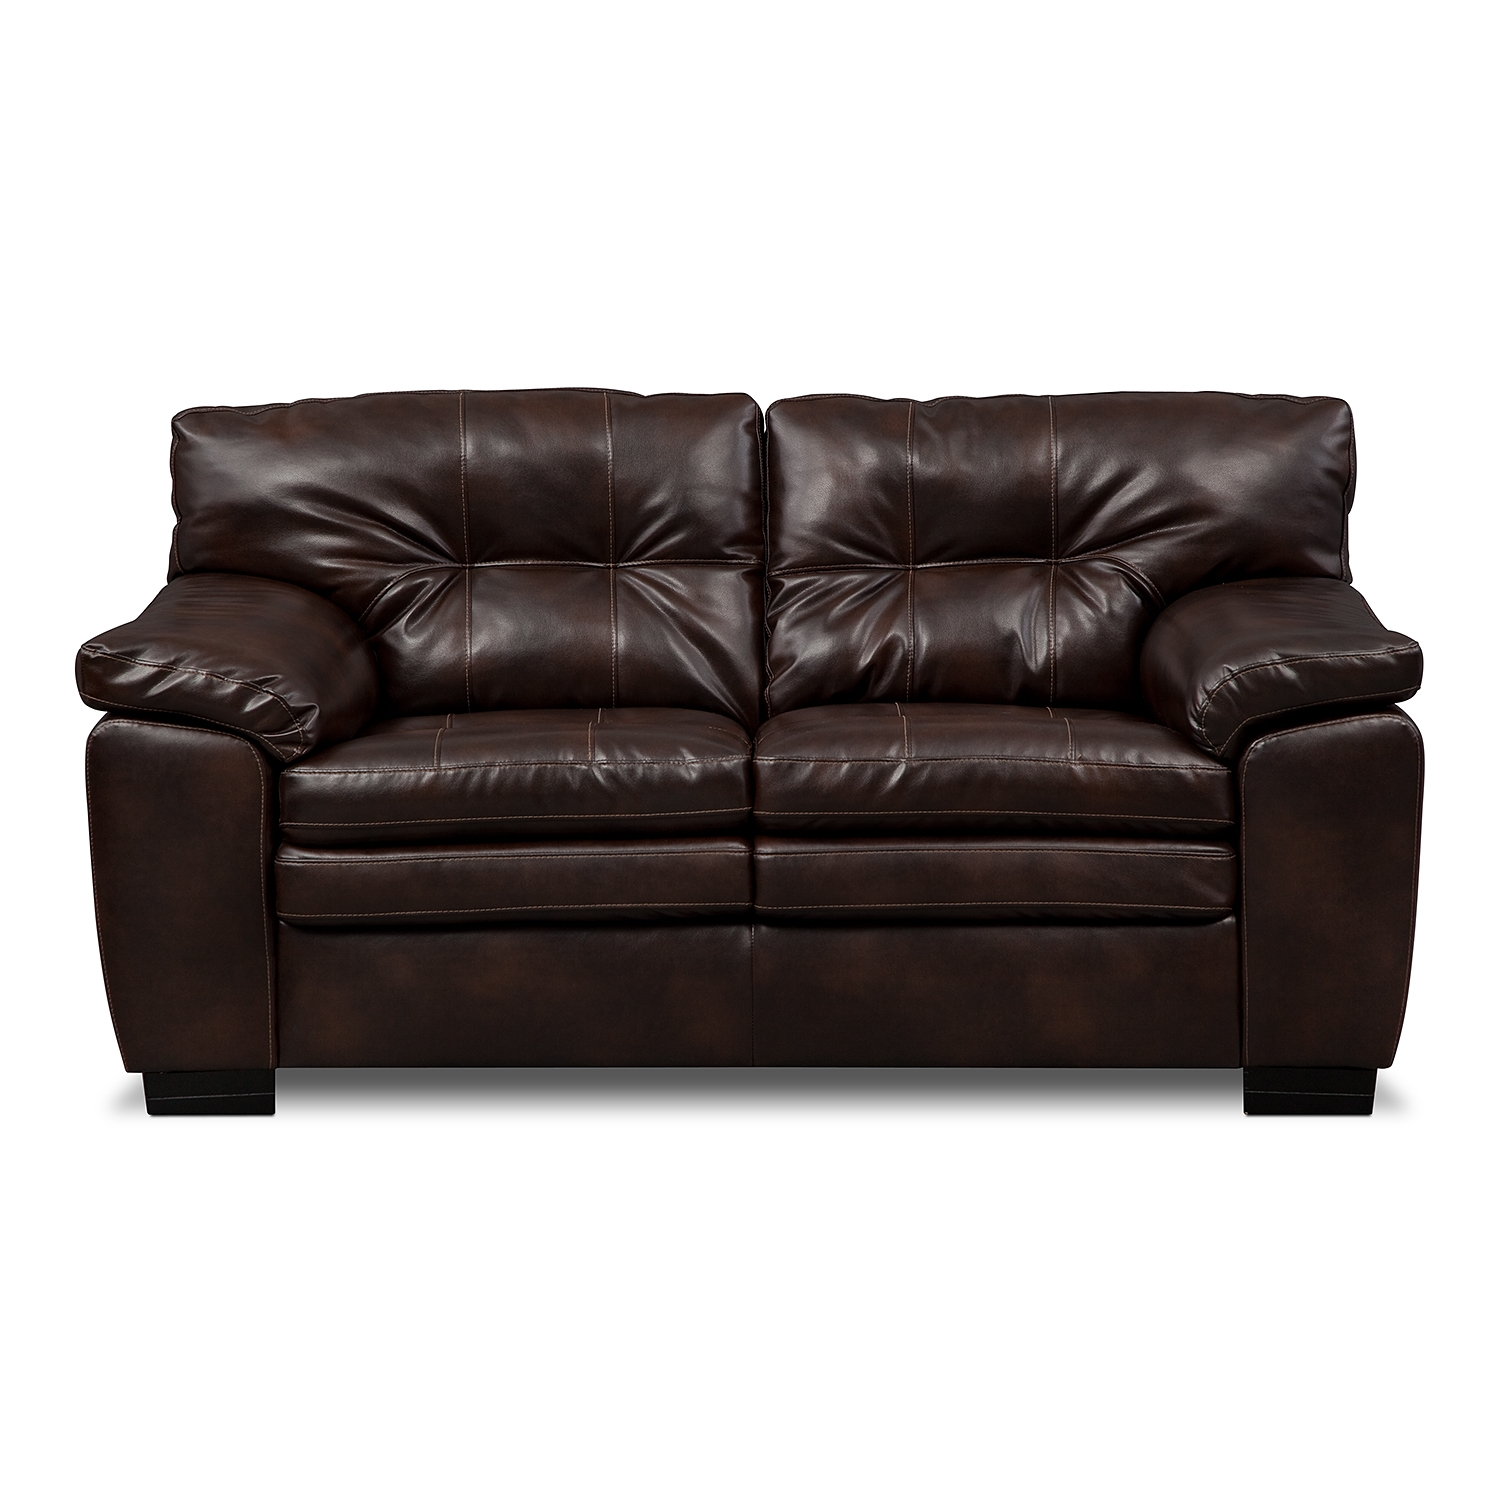 Convertible Loveseat Sofa Bed With Chaise Couch Sofa: best loveseats